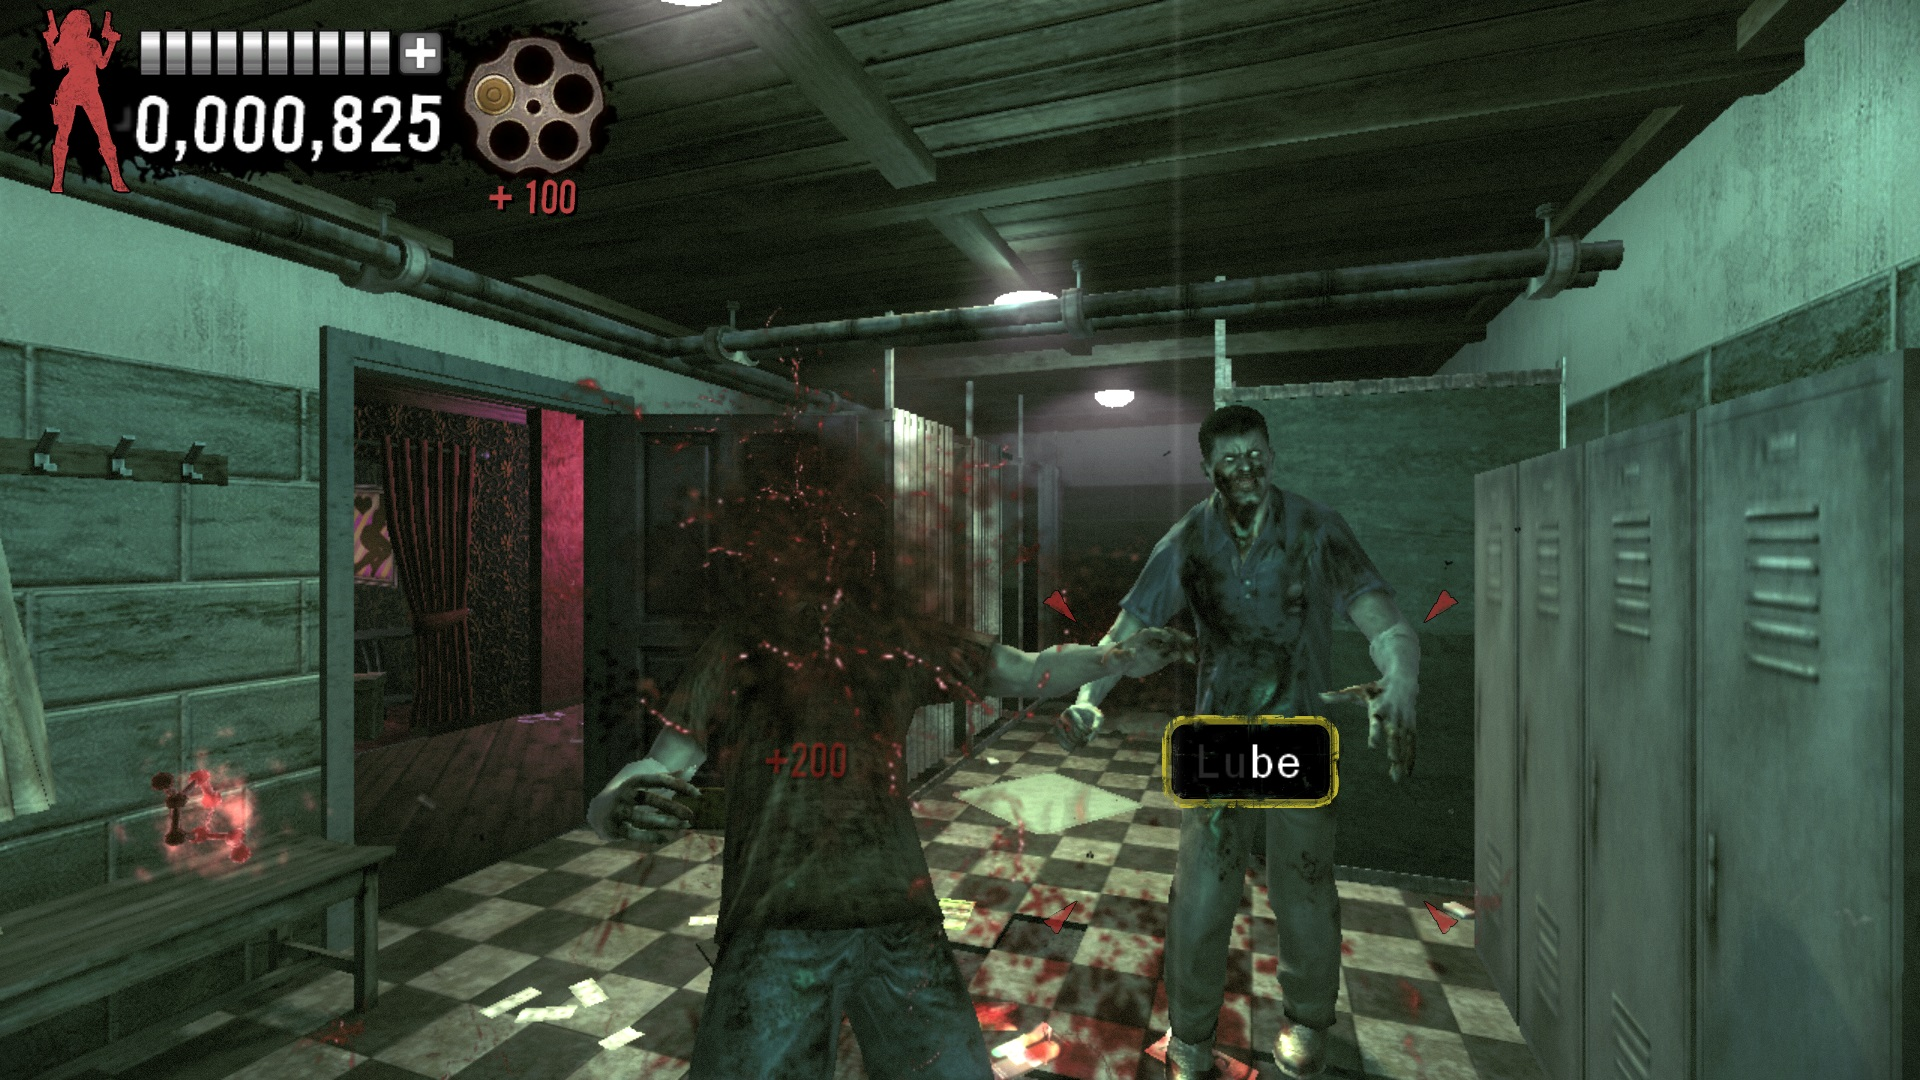 Typing,Overkill,Dead,The Typing Of The Dead Overkill,action,games,horror,zombie,العاب,اكشن,رعب,زومبى,ريباك,كراك,cracked,repack